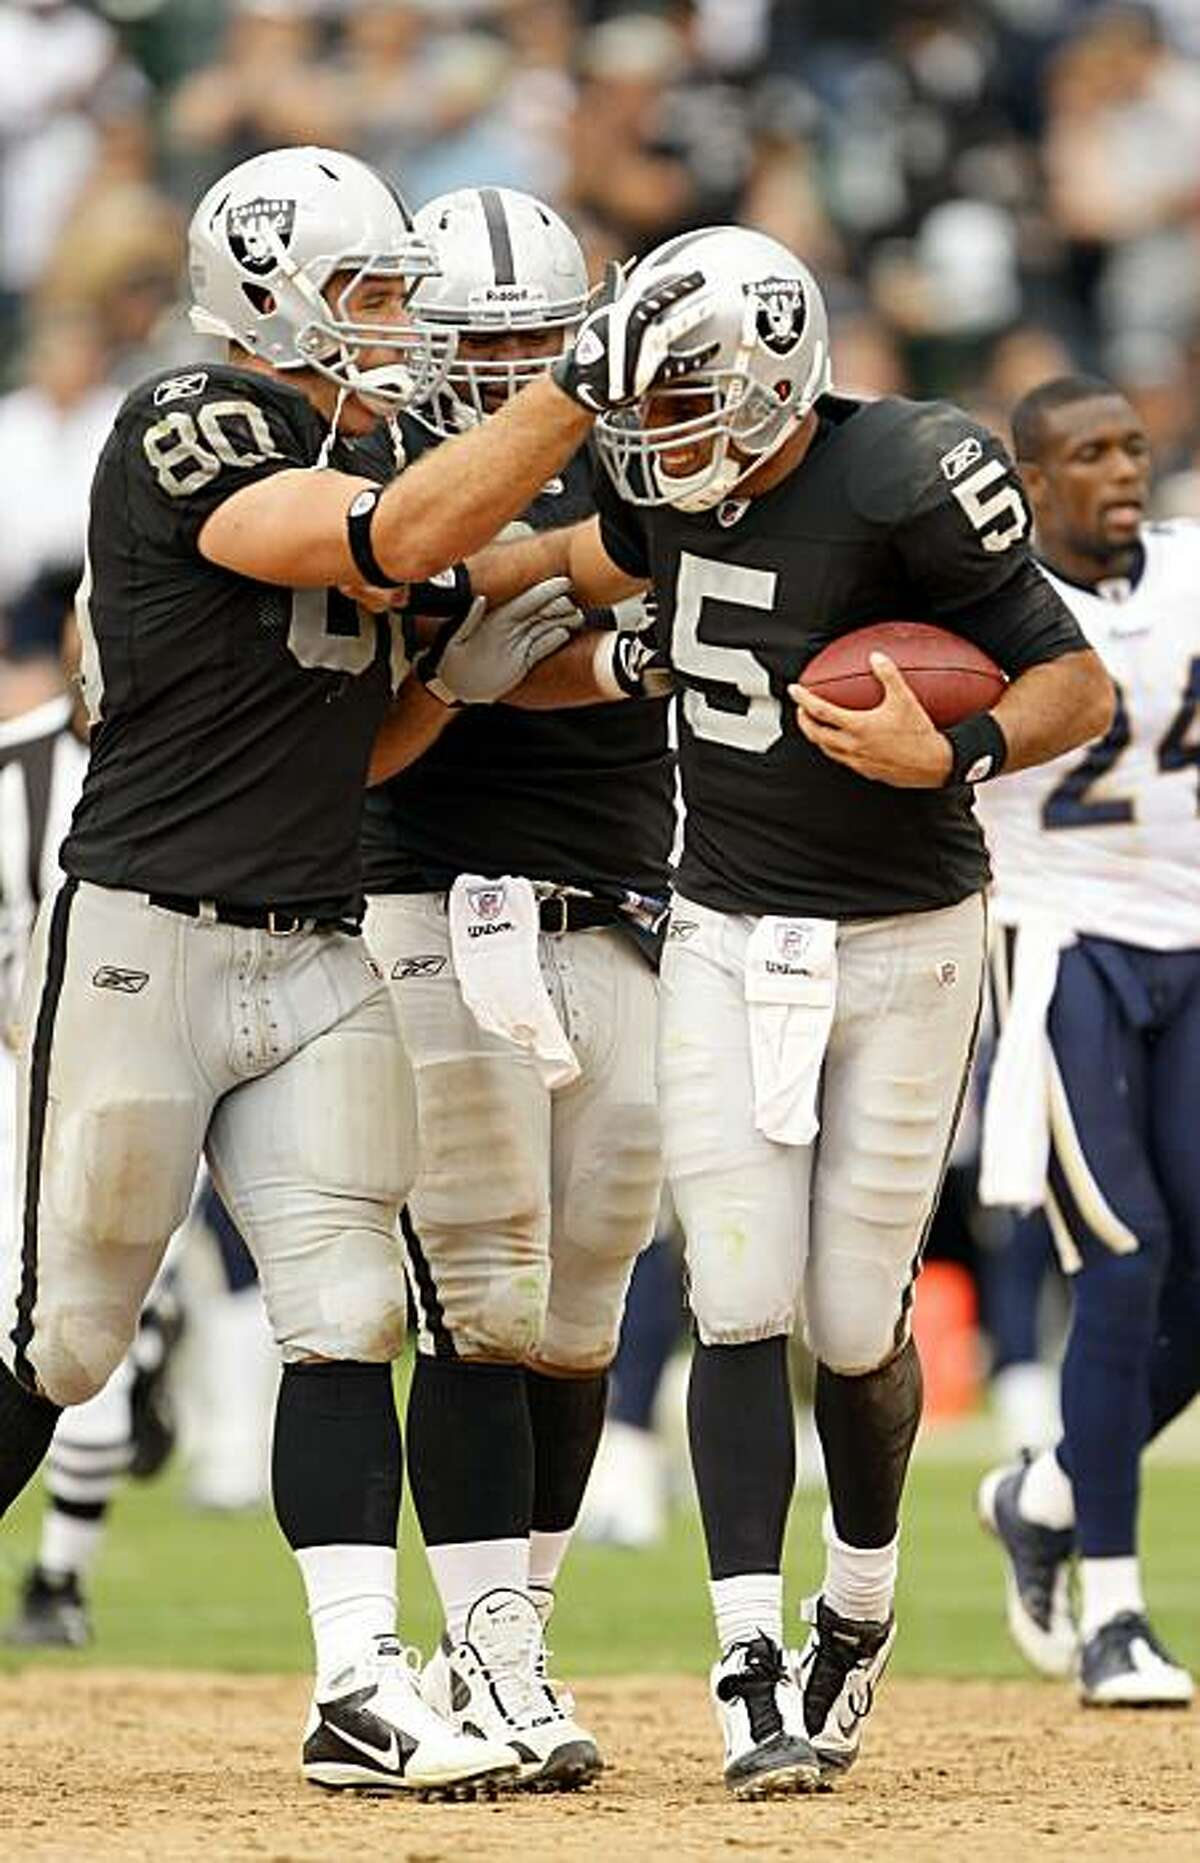 OAKLAND, CA - SEPTEMBER 19: Bruce Gradkowski #5 of the Oakland Raiders is congratulated by Zach Miller #80 after they beat the St. Louis Rams at the Oakland-Alameda County Coliseum on September 19, 2010 in Oakland, California.